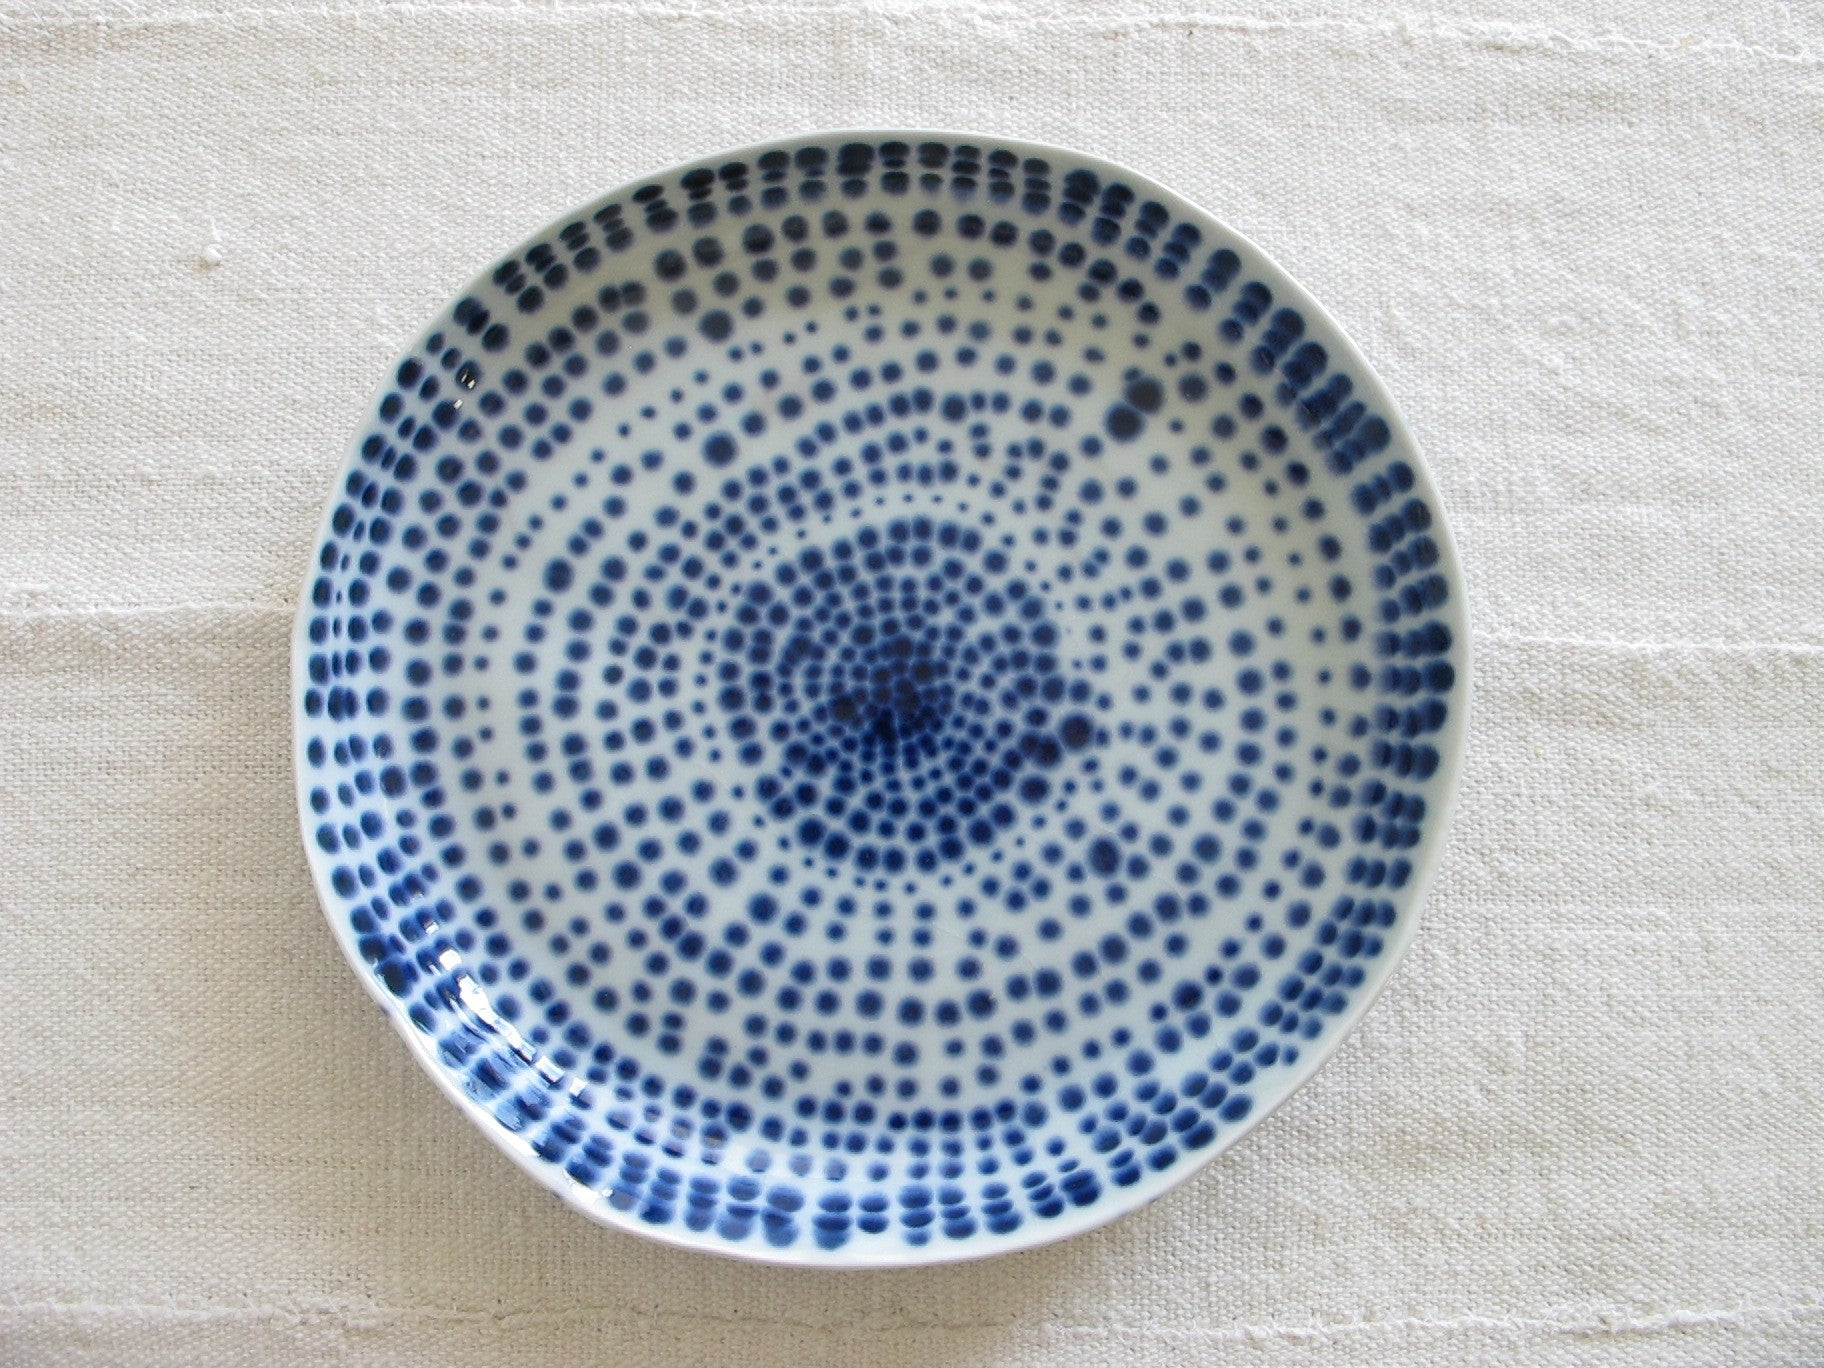 PORCELAIN PLATE No. 24